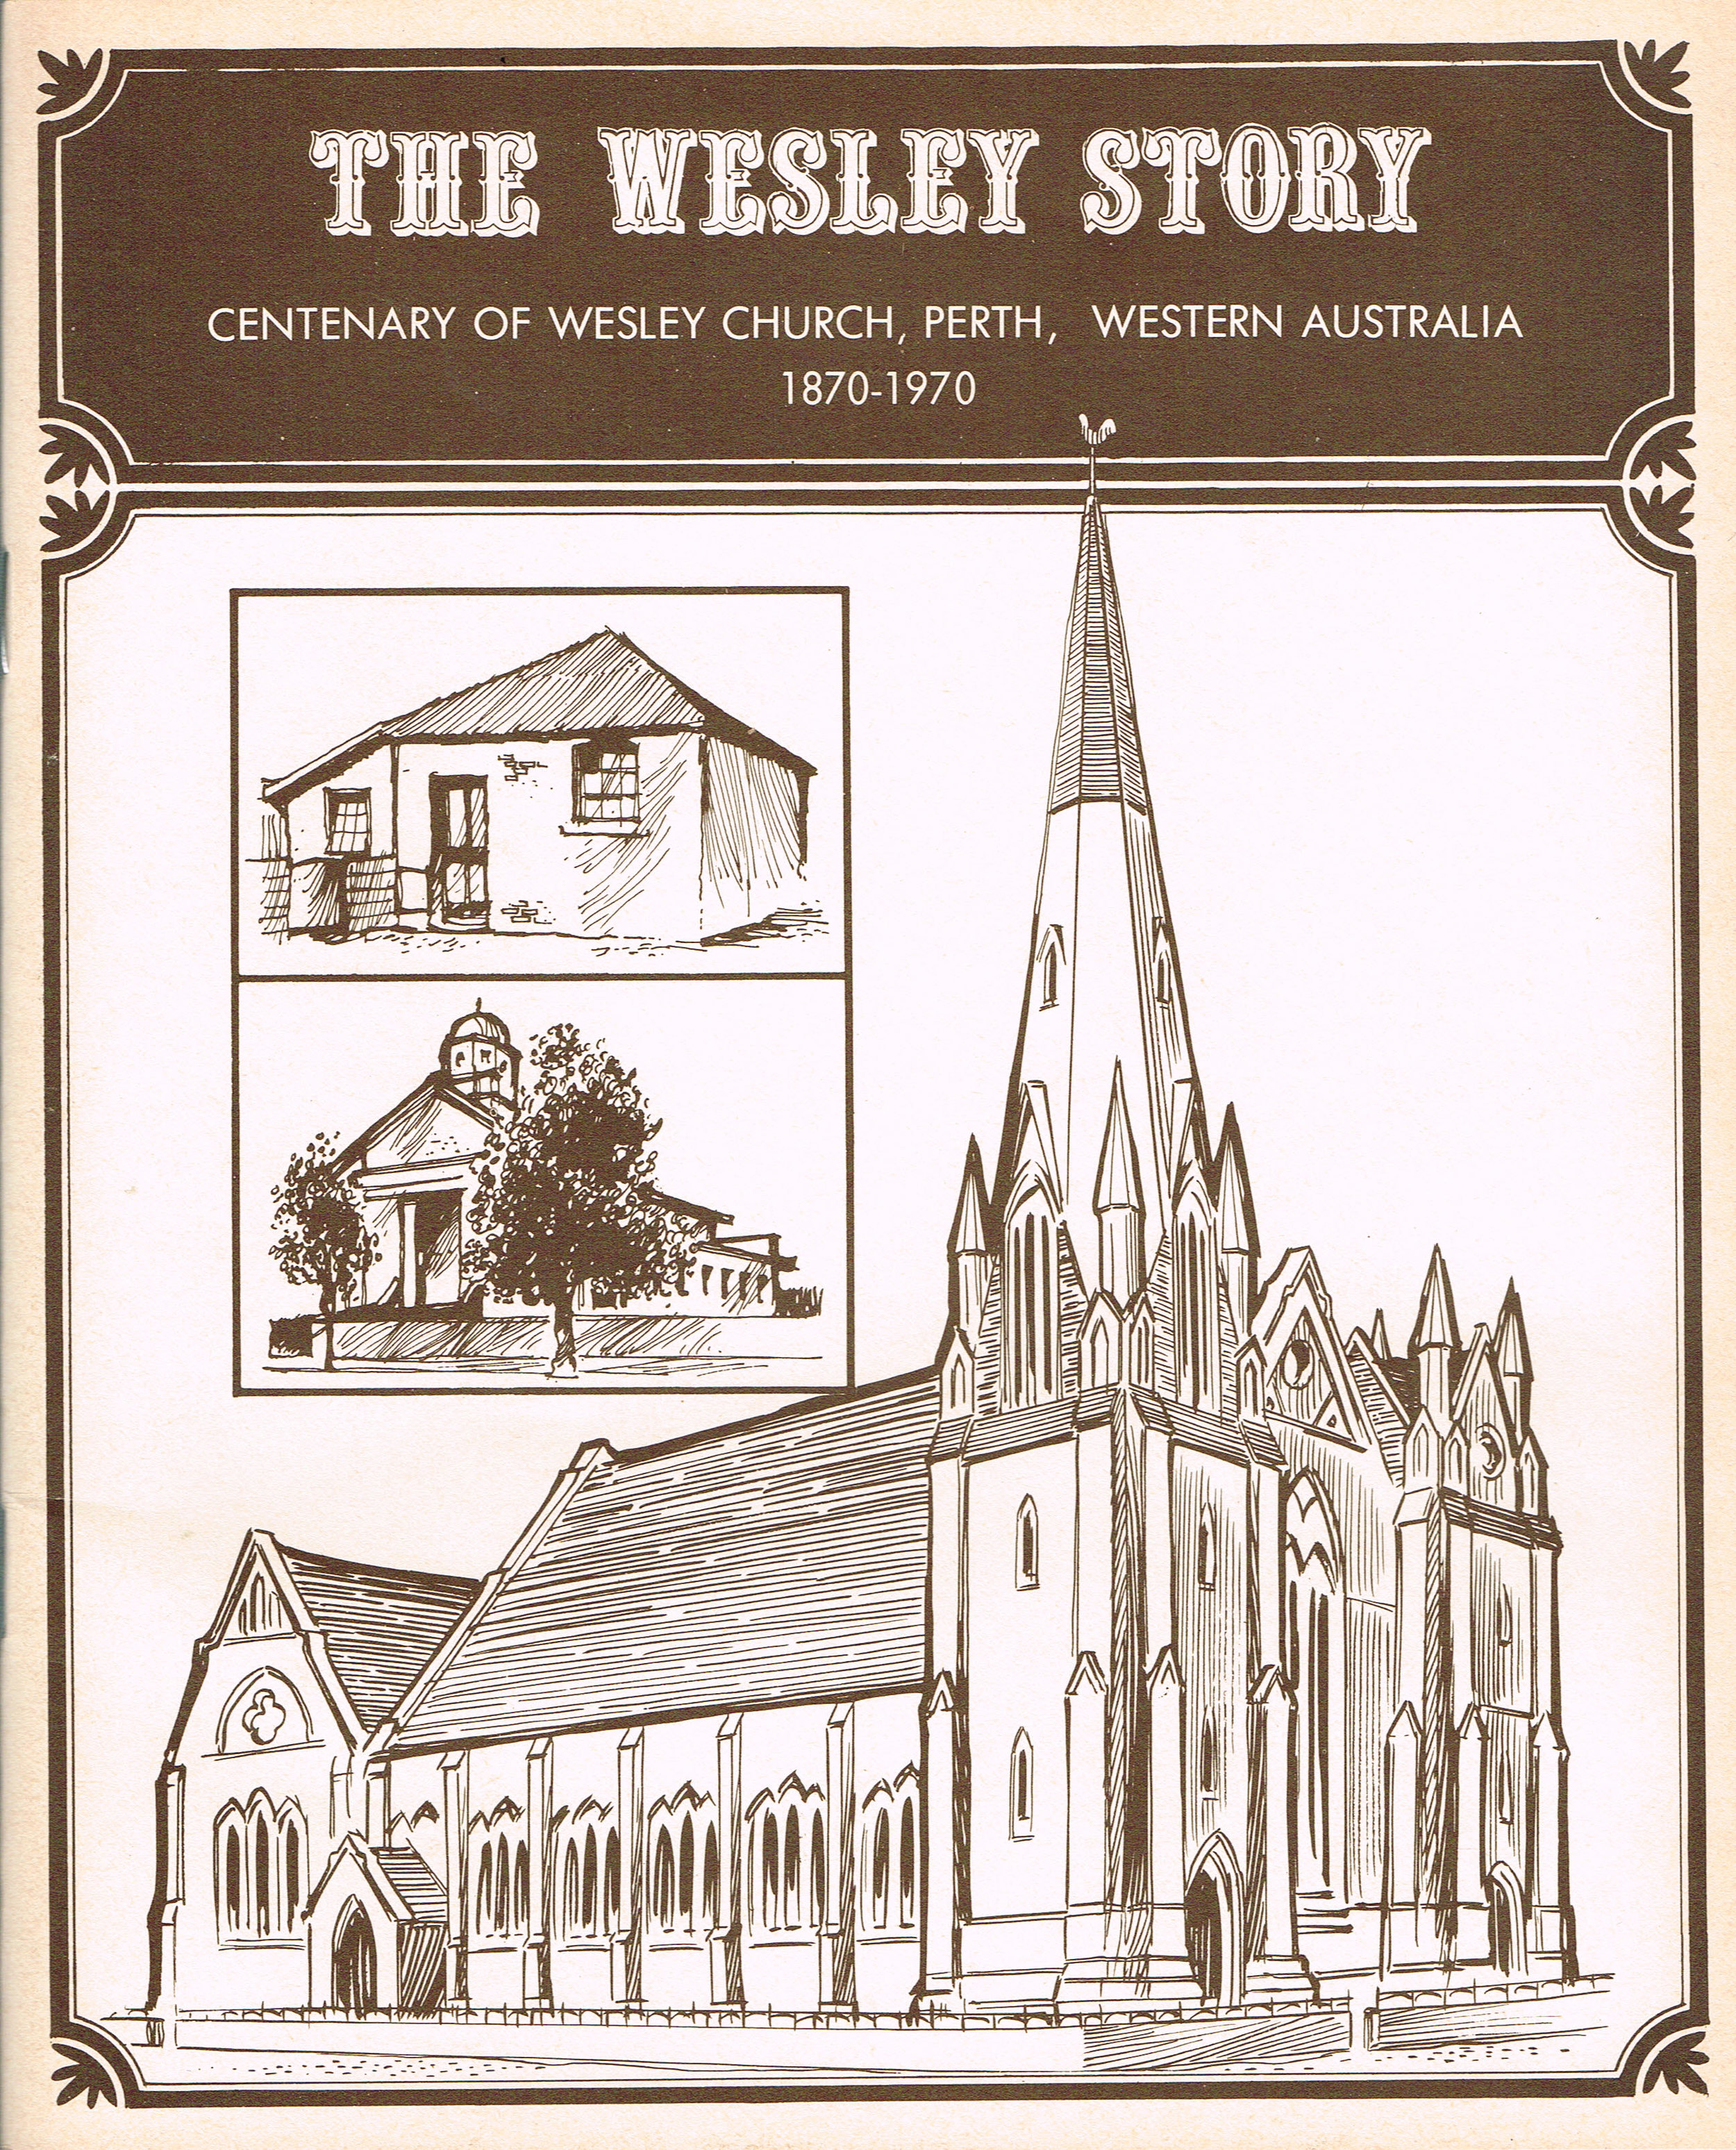 The Wesley Story: Centenary of Wesley Church, Perth Western Australia, 1870-1970  N/A.